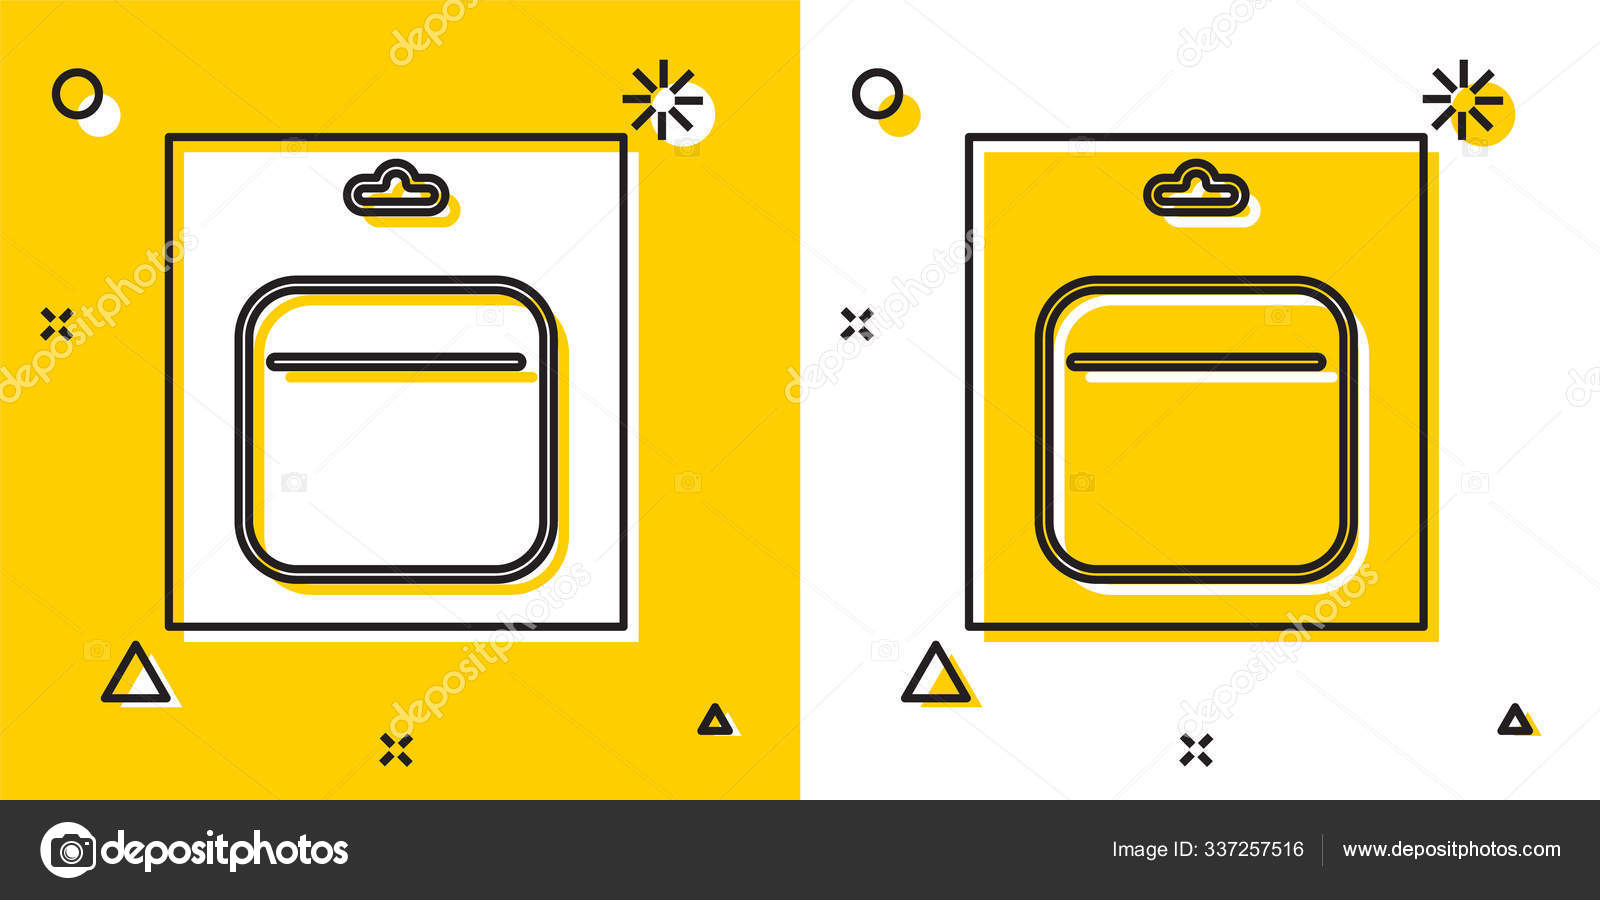 Black Battery Pack Icon Isolated Yellow White Background Lightning Bolt Stock Vector C Vectorvalera Gmail Com 337257516